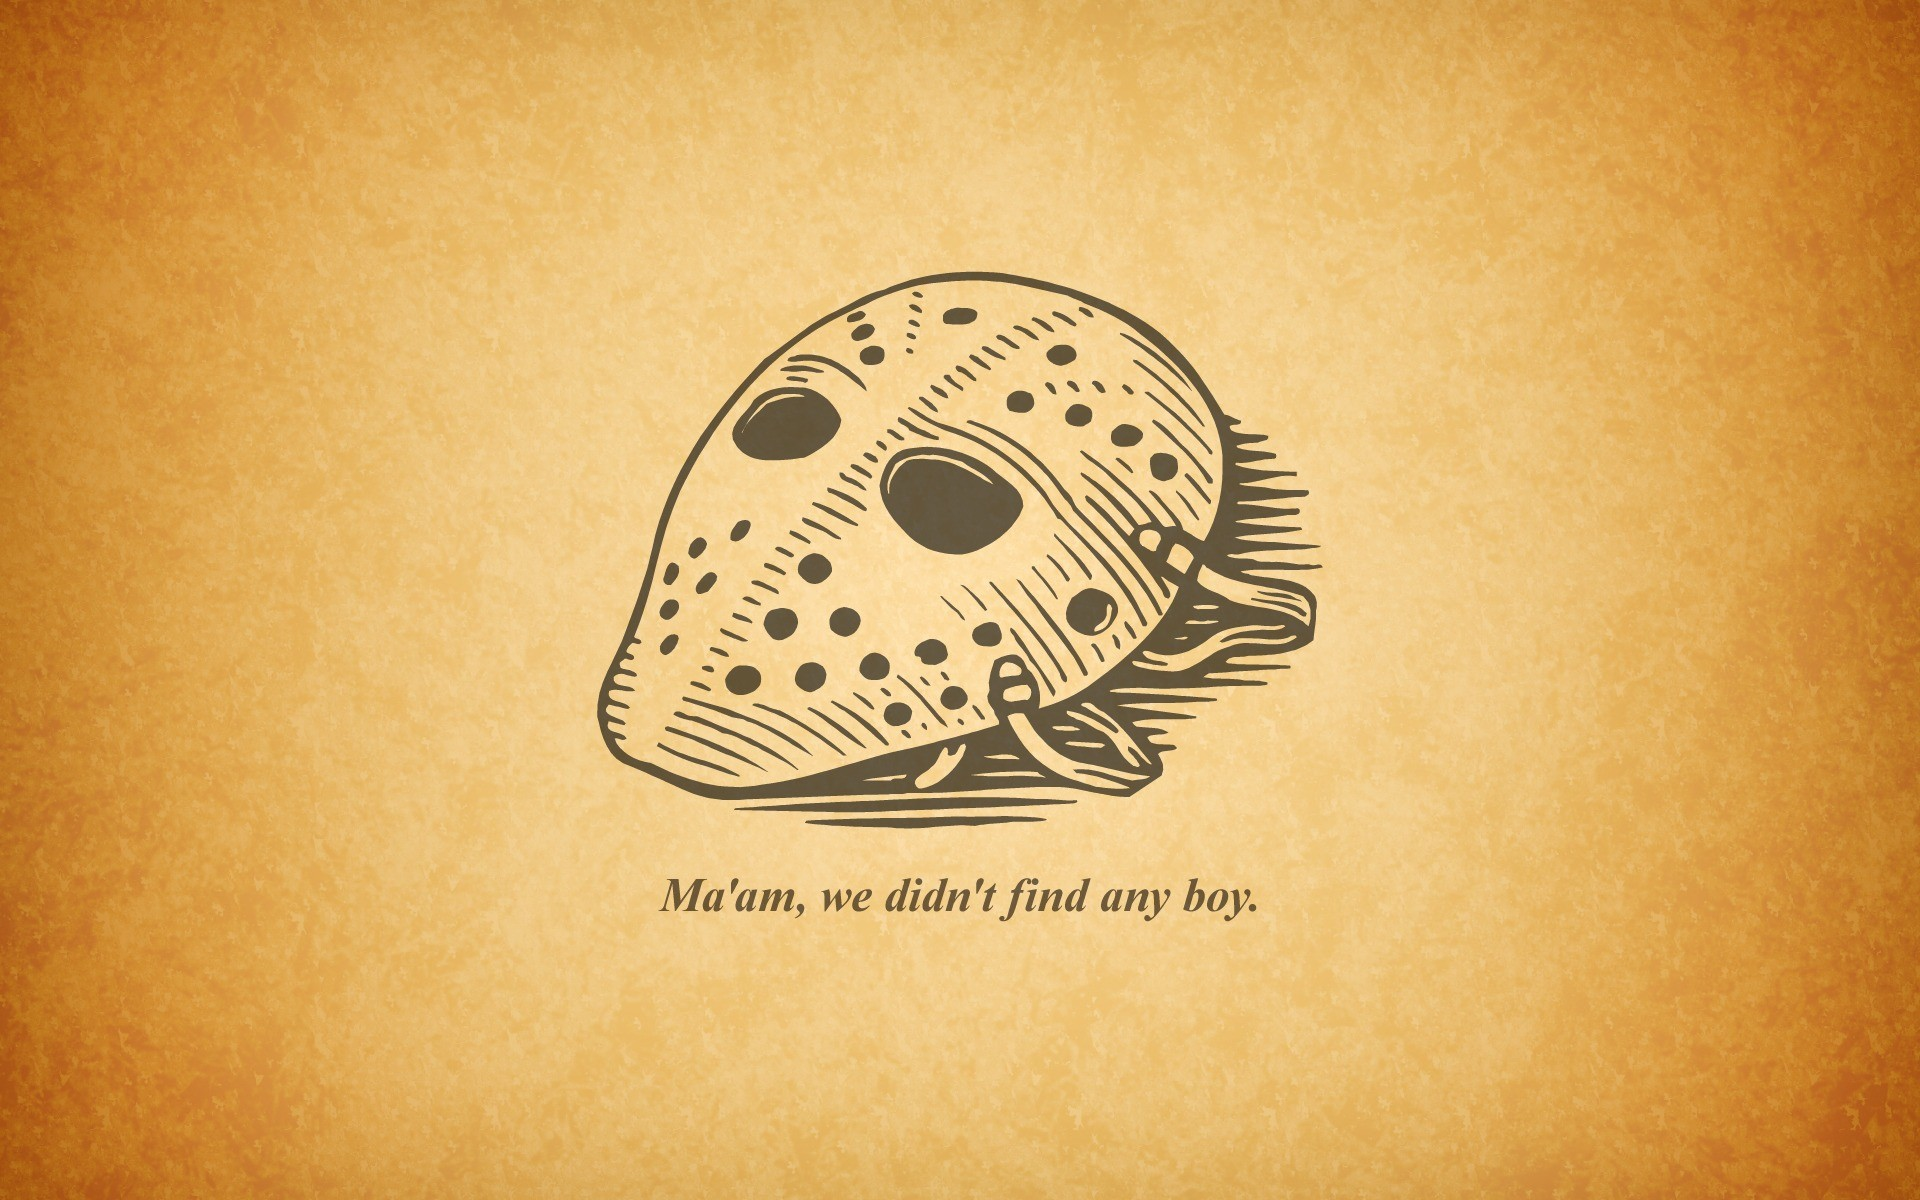 … Friday the 13th quote HD Wallpaper 1920×1200